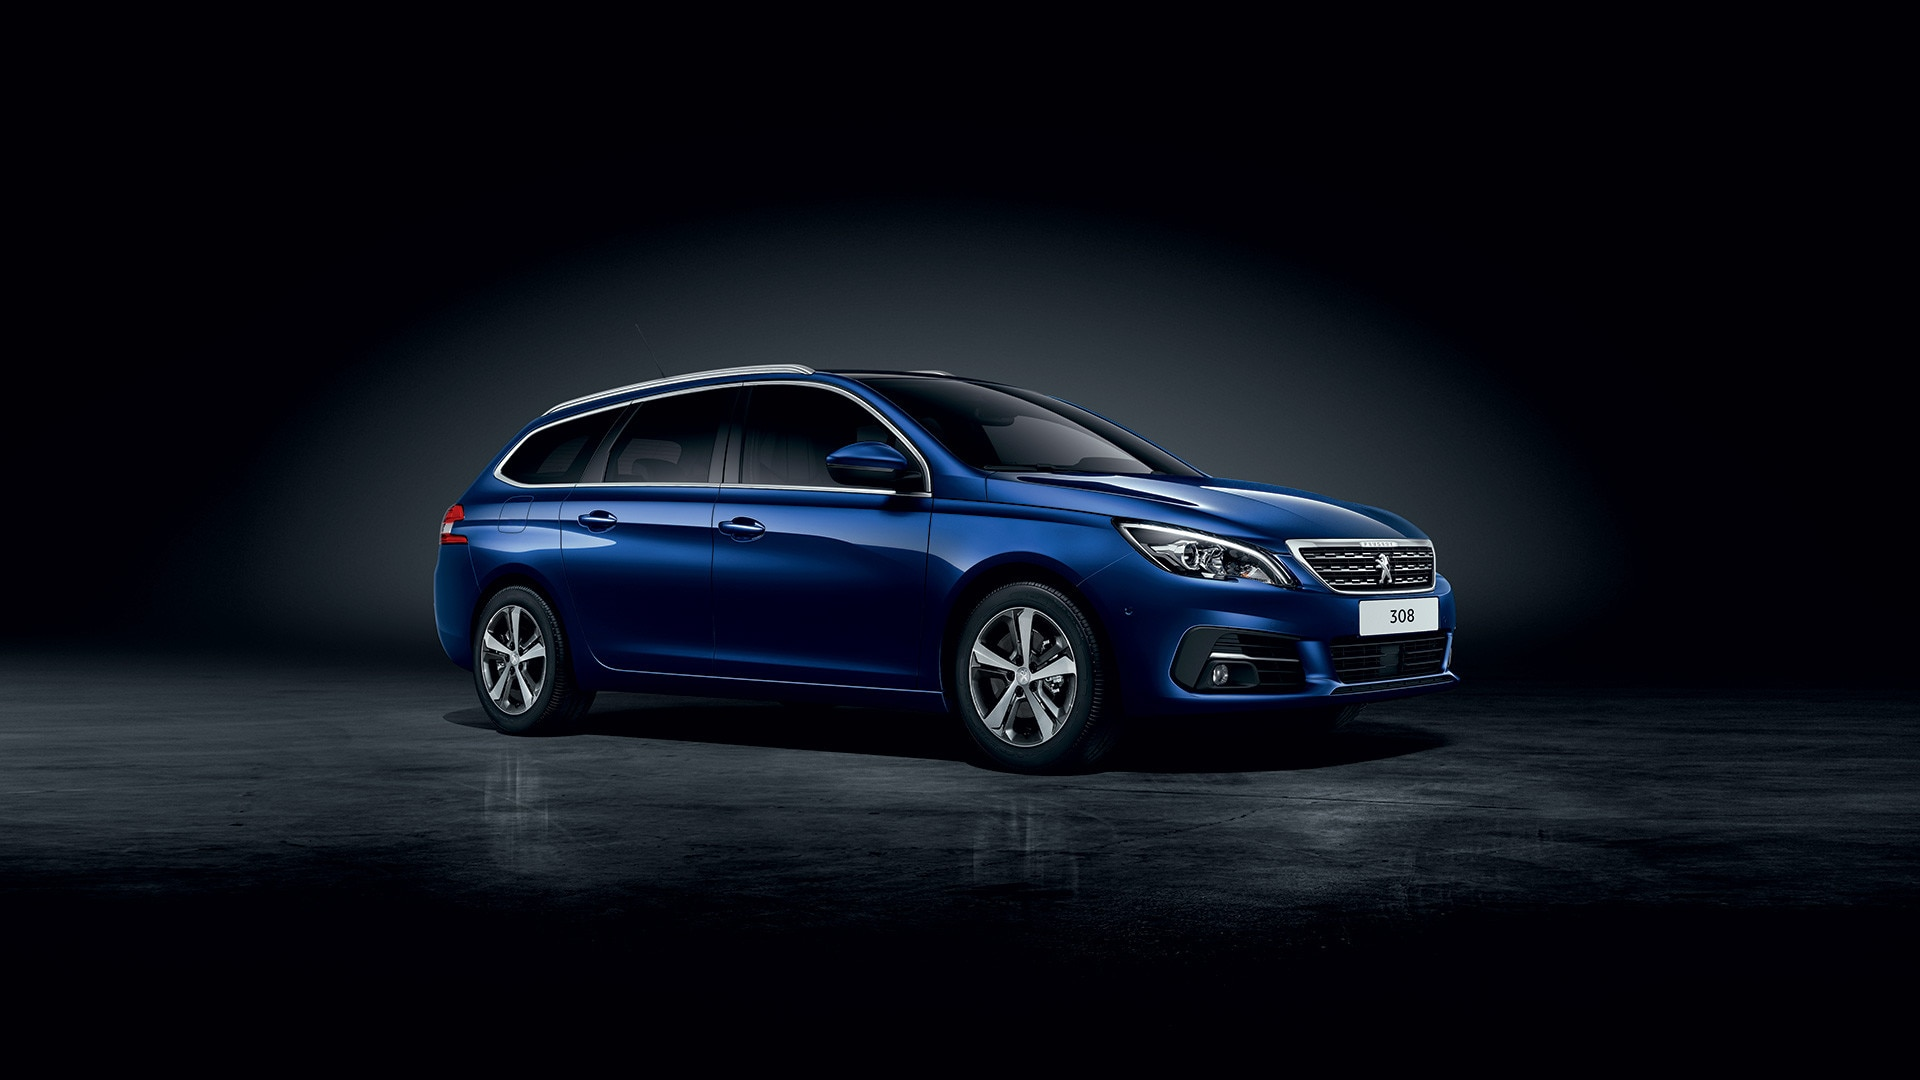 peugeot 308 touring new car showroom family wagon test drive today. Black Bedroom Furniture Sets. Home Design Ideas